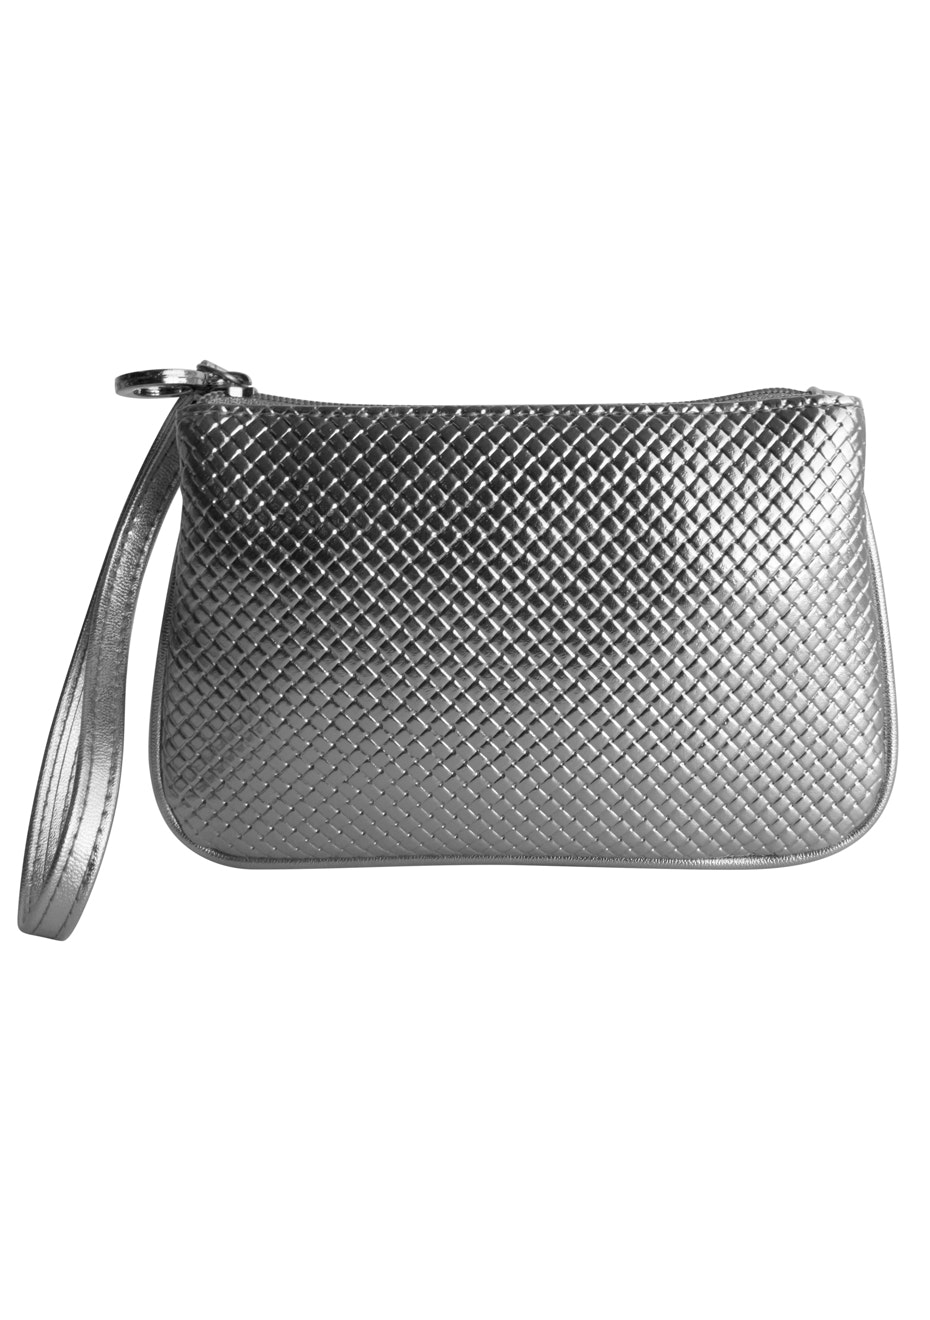 TL+C - Braid Silver Wristlet - Pewter